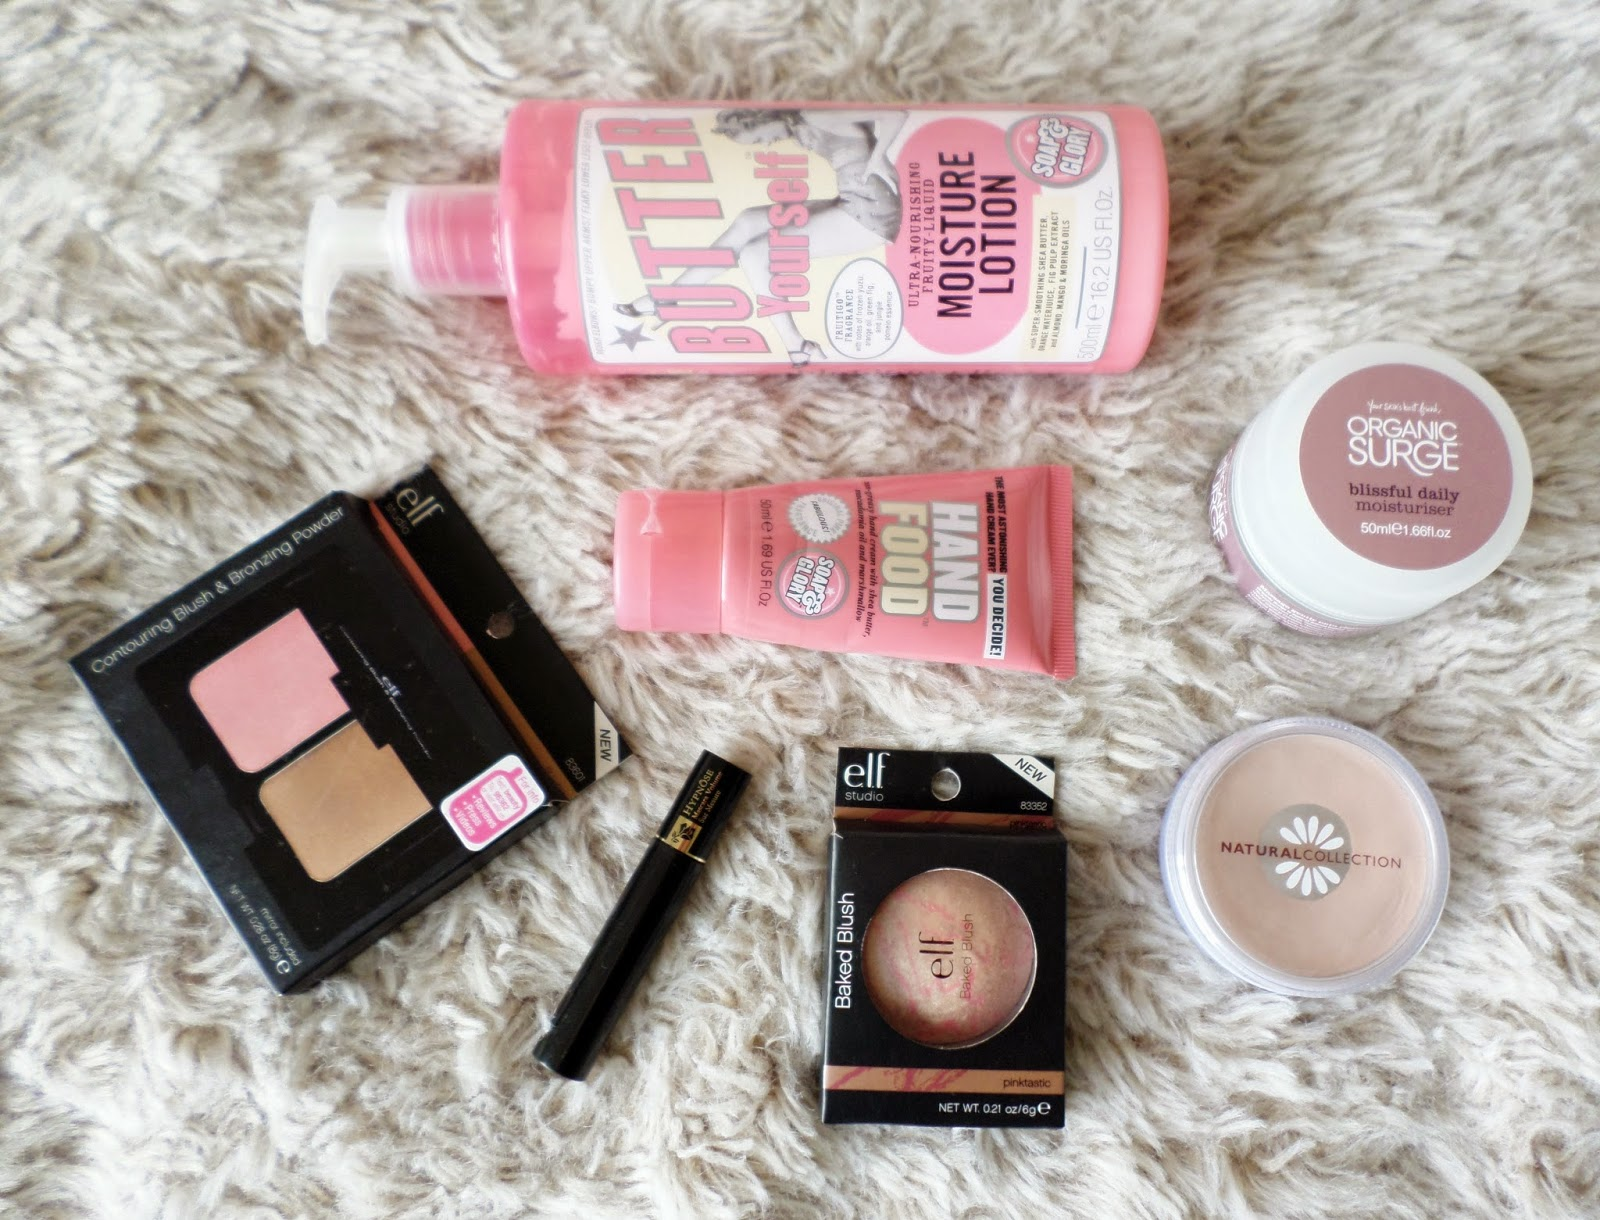 August Beauty Favourites Featuring Soap & Glory, Organic Surge, Natural Collection, ELF Cosmetics and Lancome